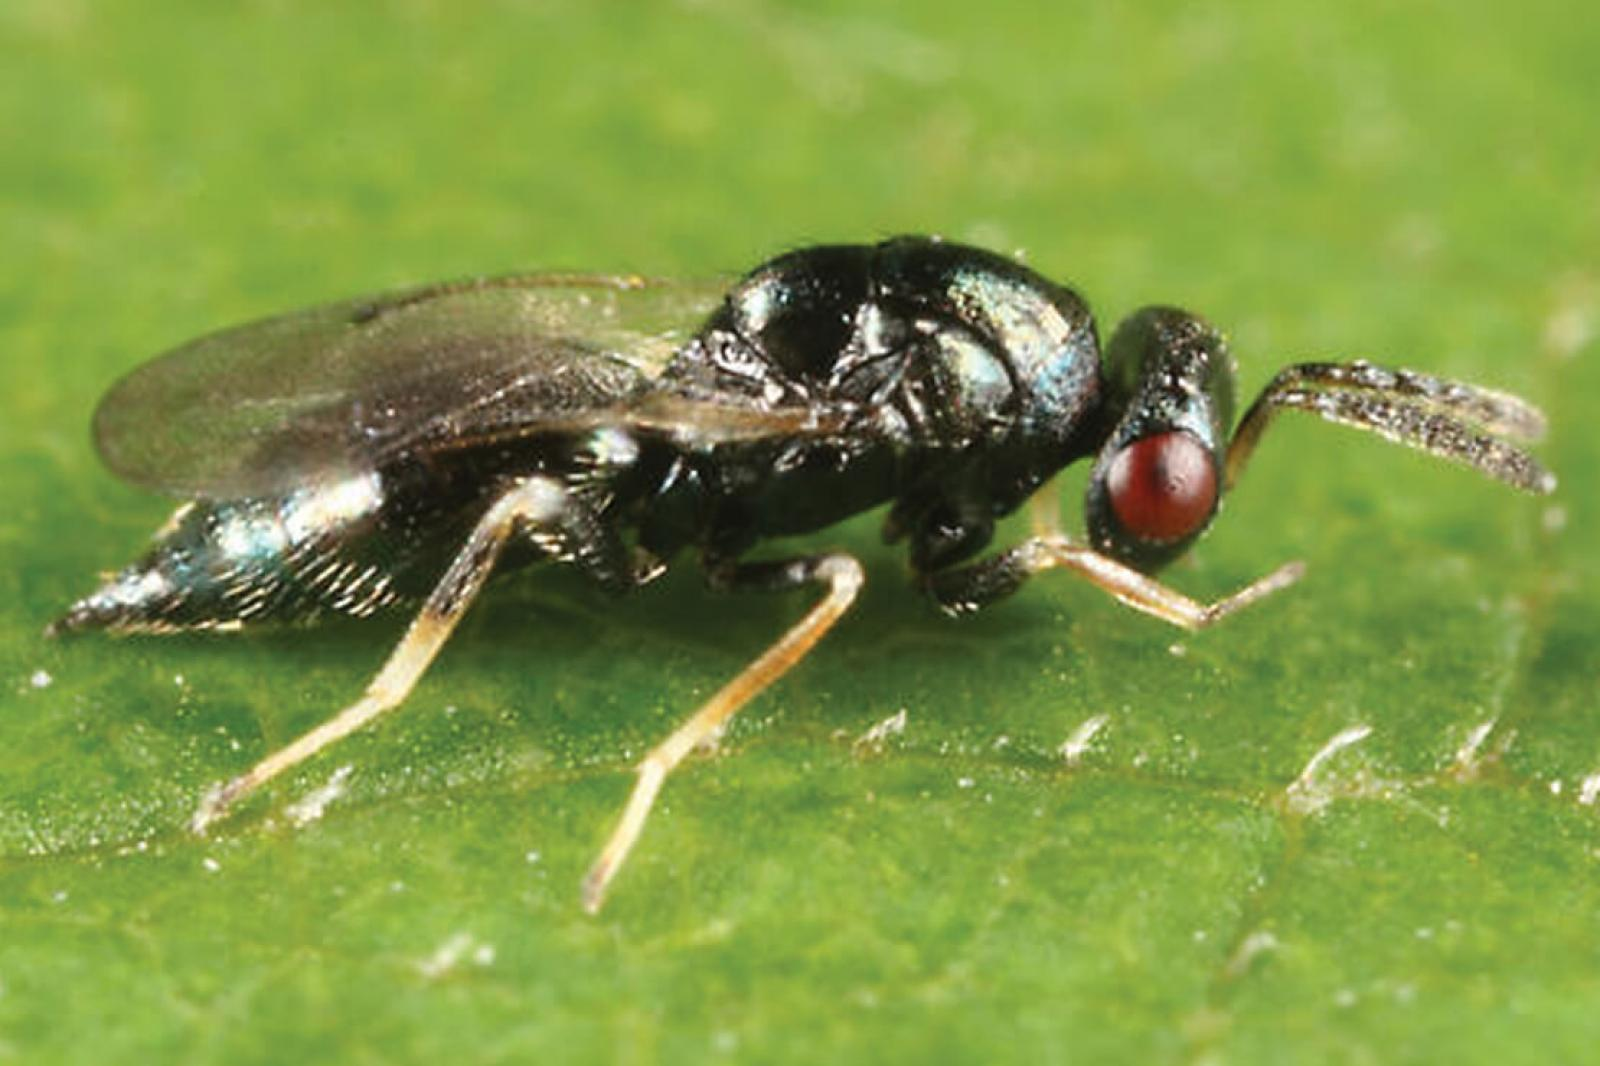 Tetrastichus planipennisi, a natural enemy of emerald ash borer, offers hope as a management tool.